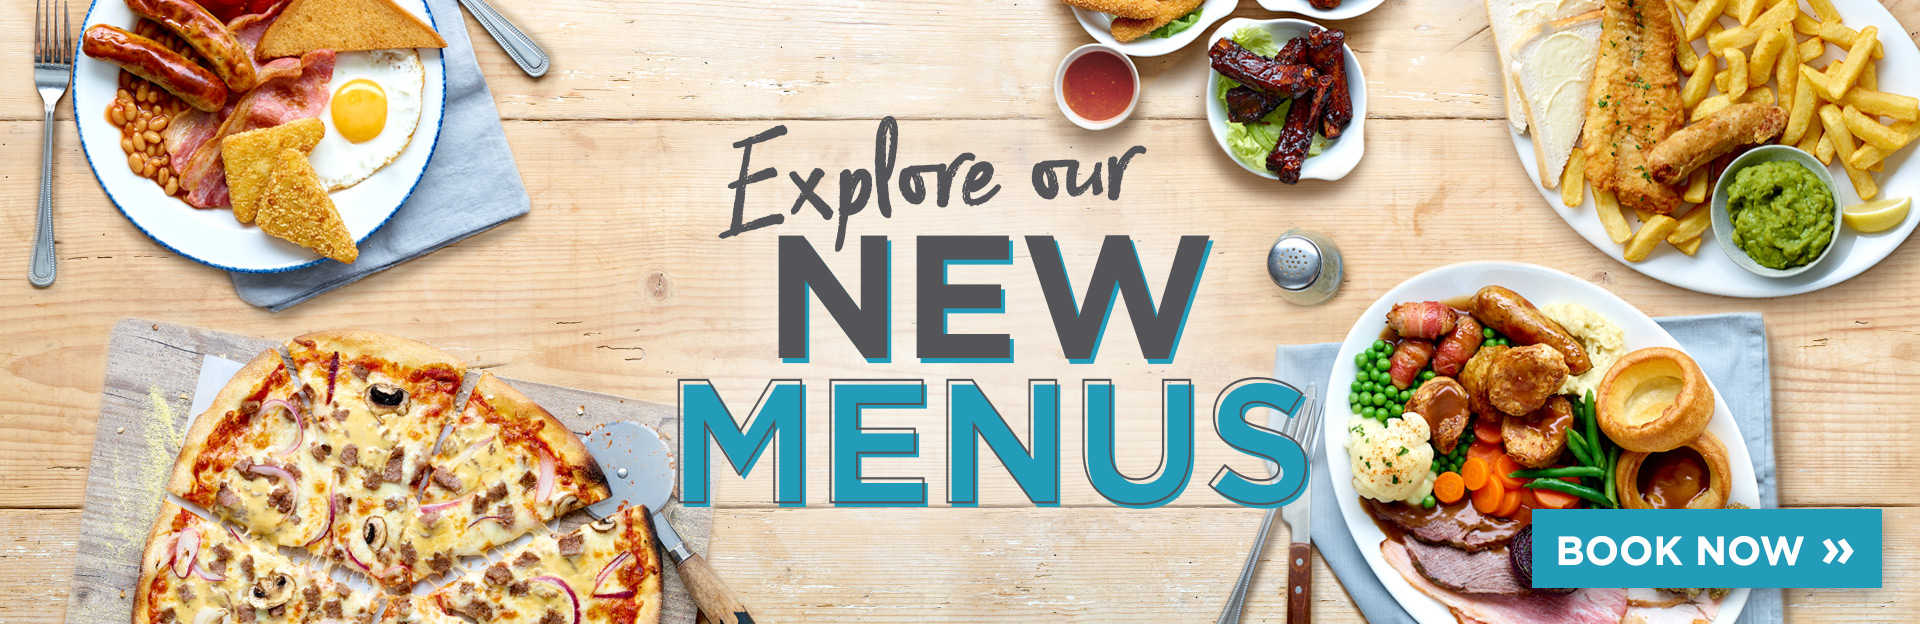 New menu at The Jug & Bottle